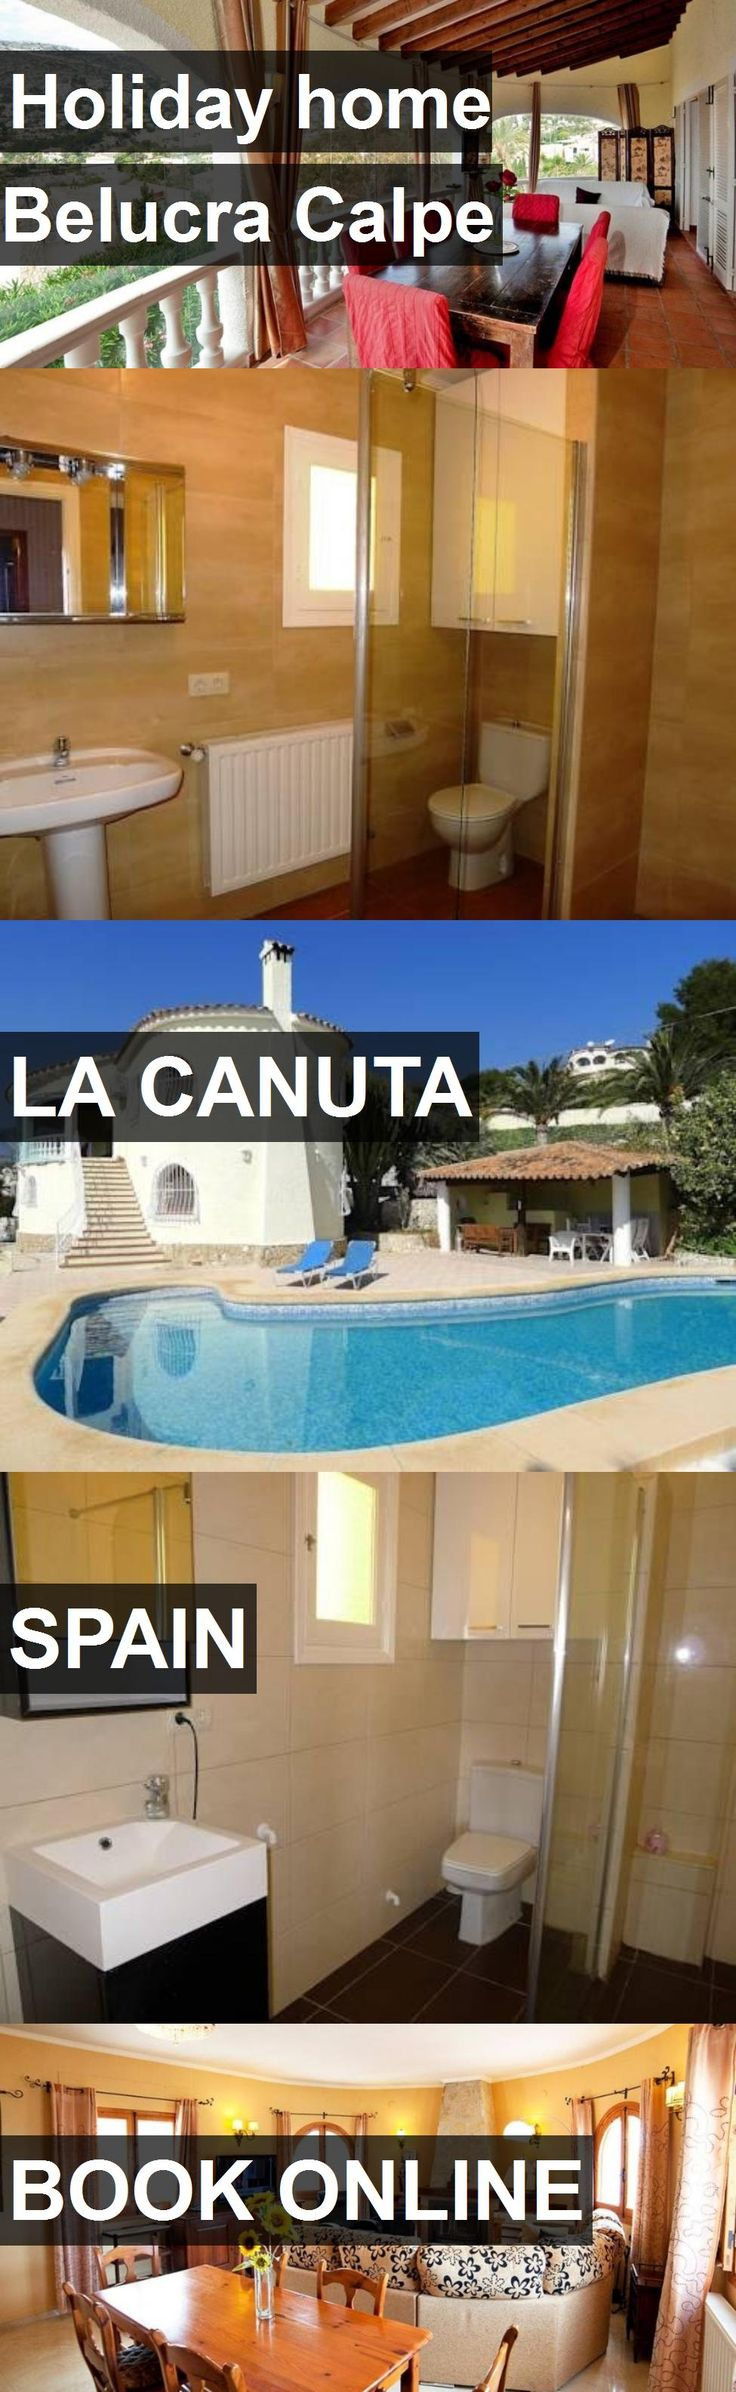 Hotel Holiday home Belucra Calpe in la Canuta, Spain. For more information, photos, reviews and best prices please follow the link. #Spain #laCanuta #travel #vacation #hotel